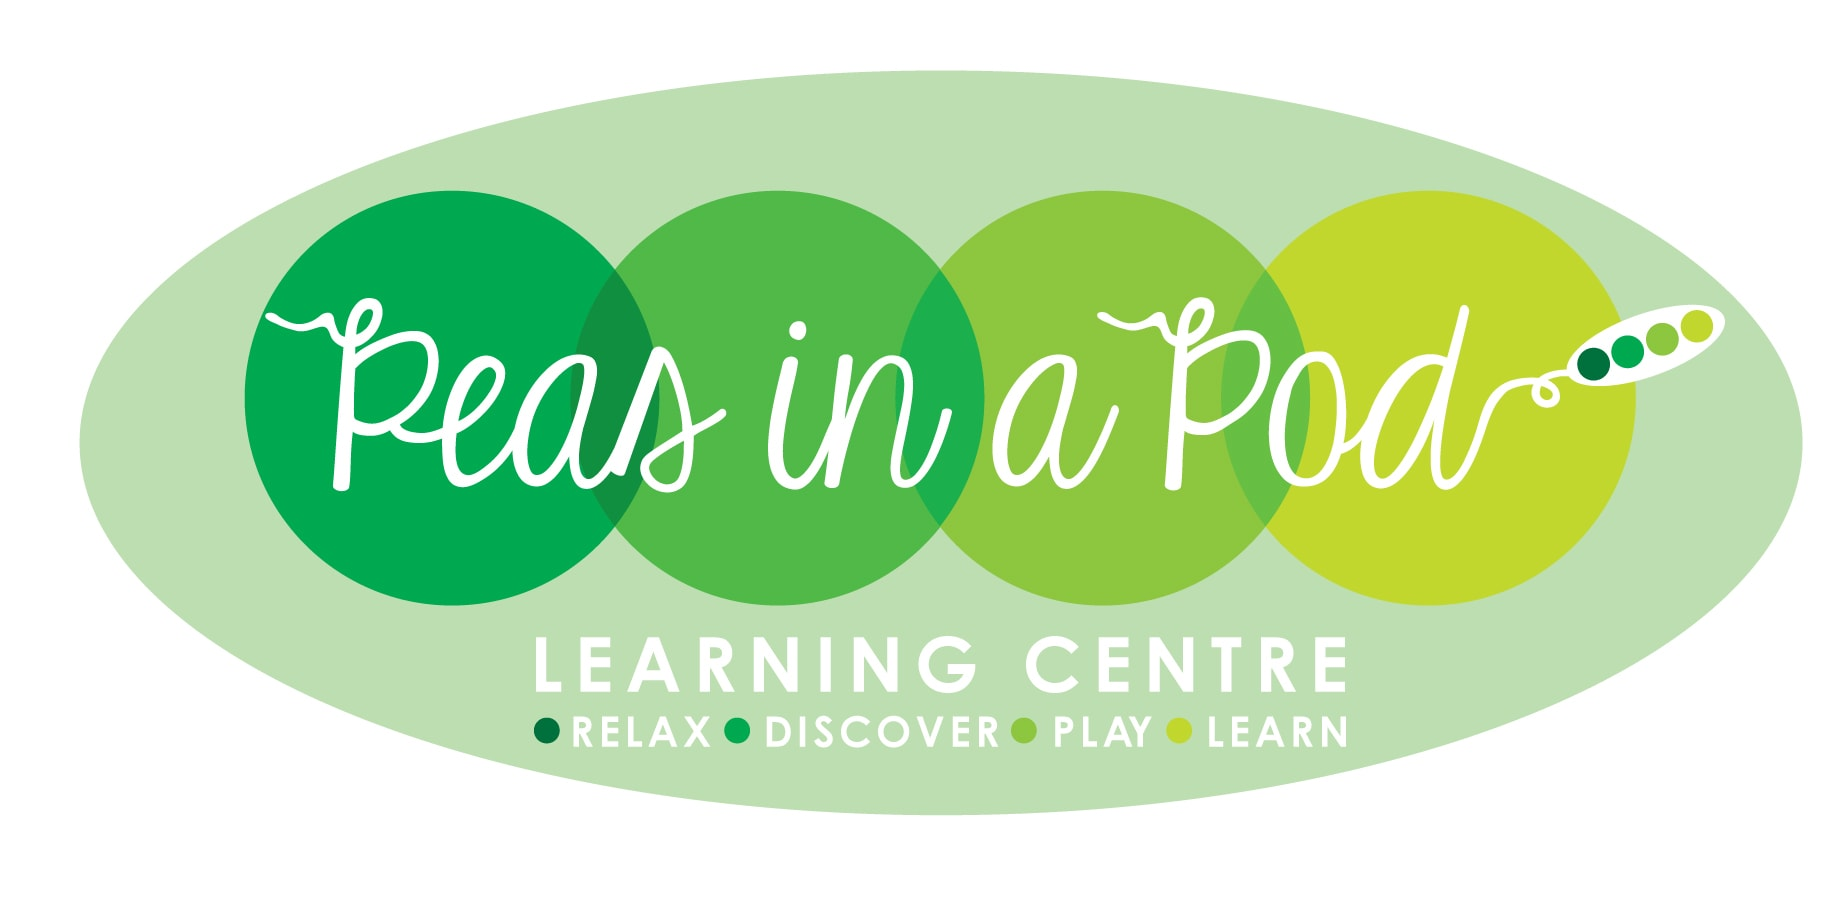 Peas in a Pod Learning Centre